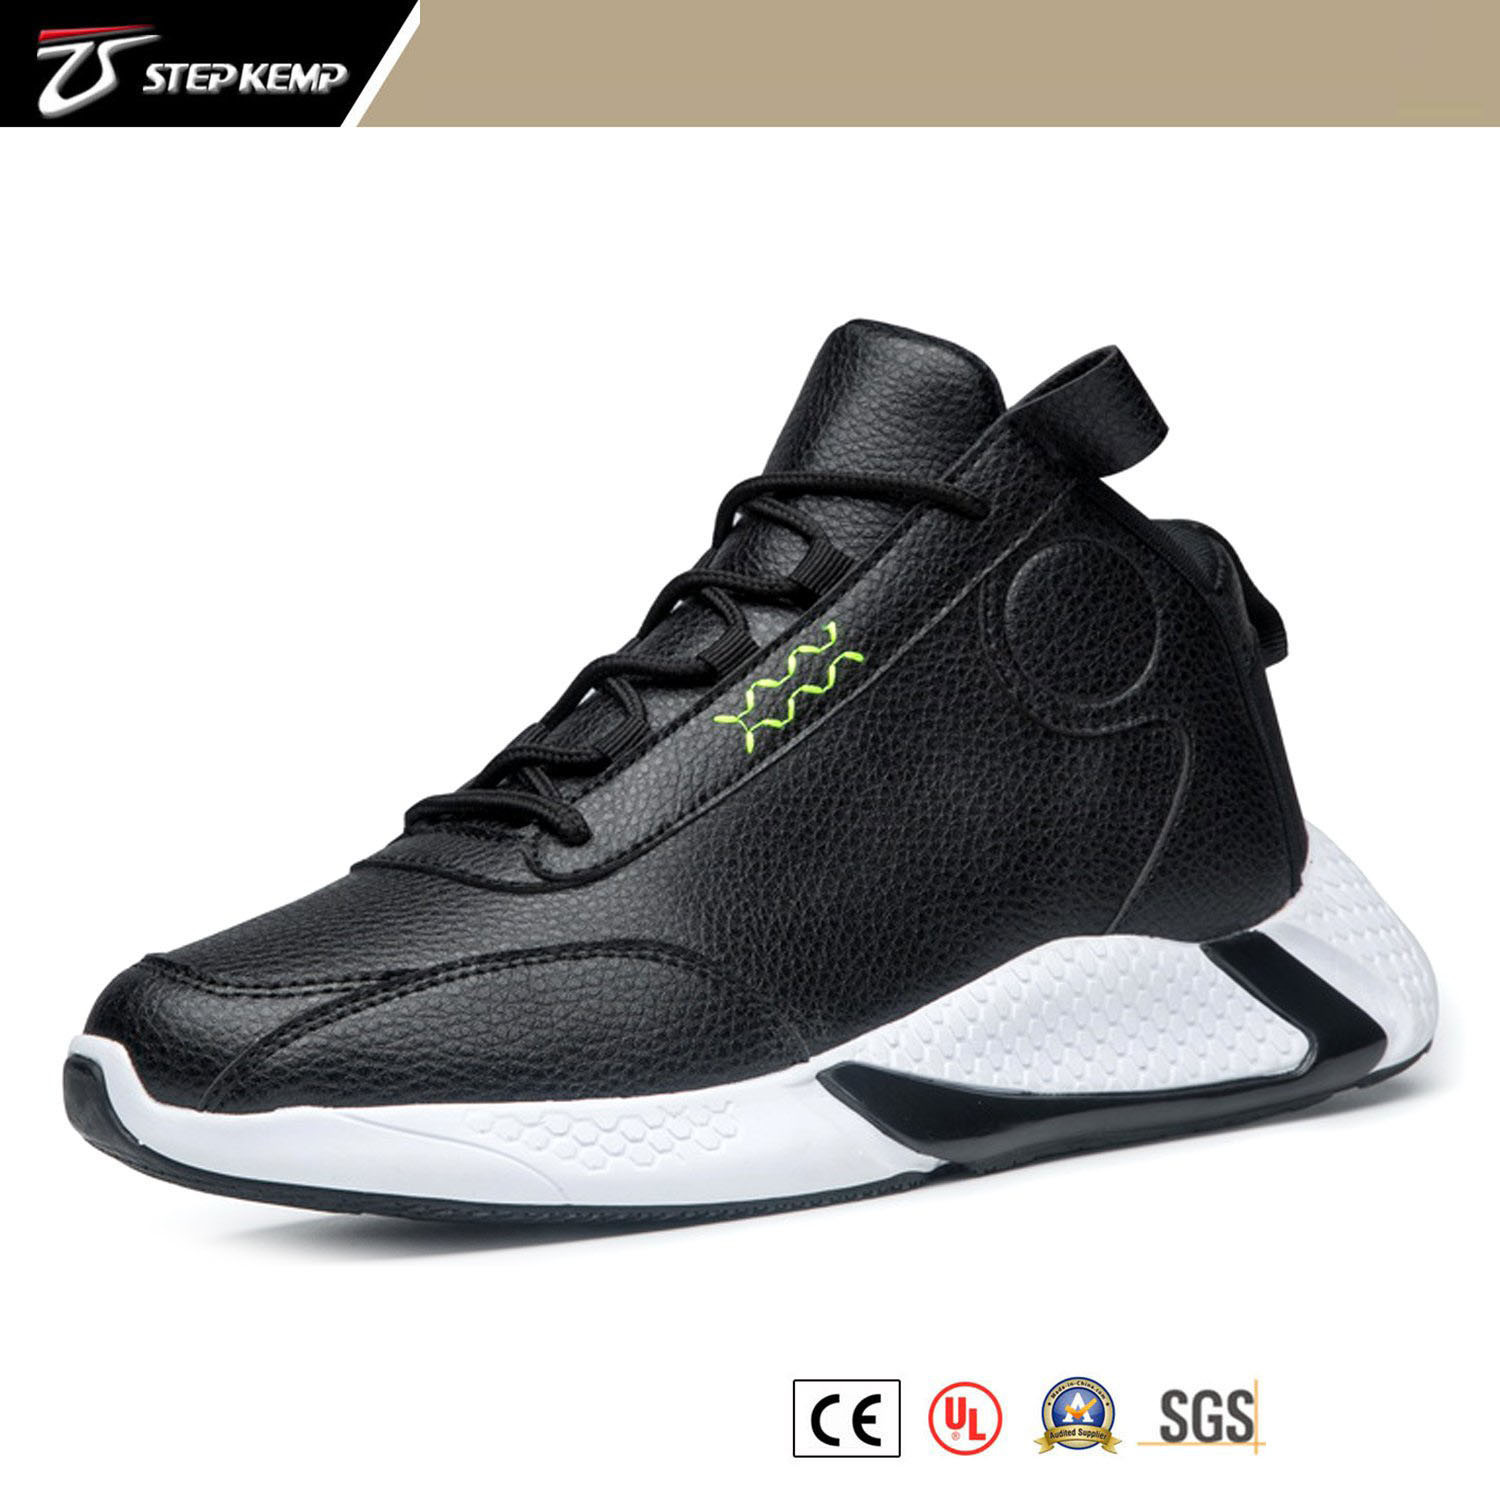 s High Top Sport Fashion Sneakers Strap